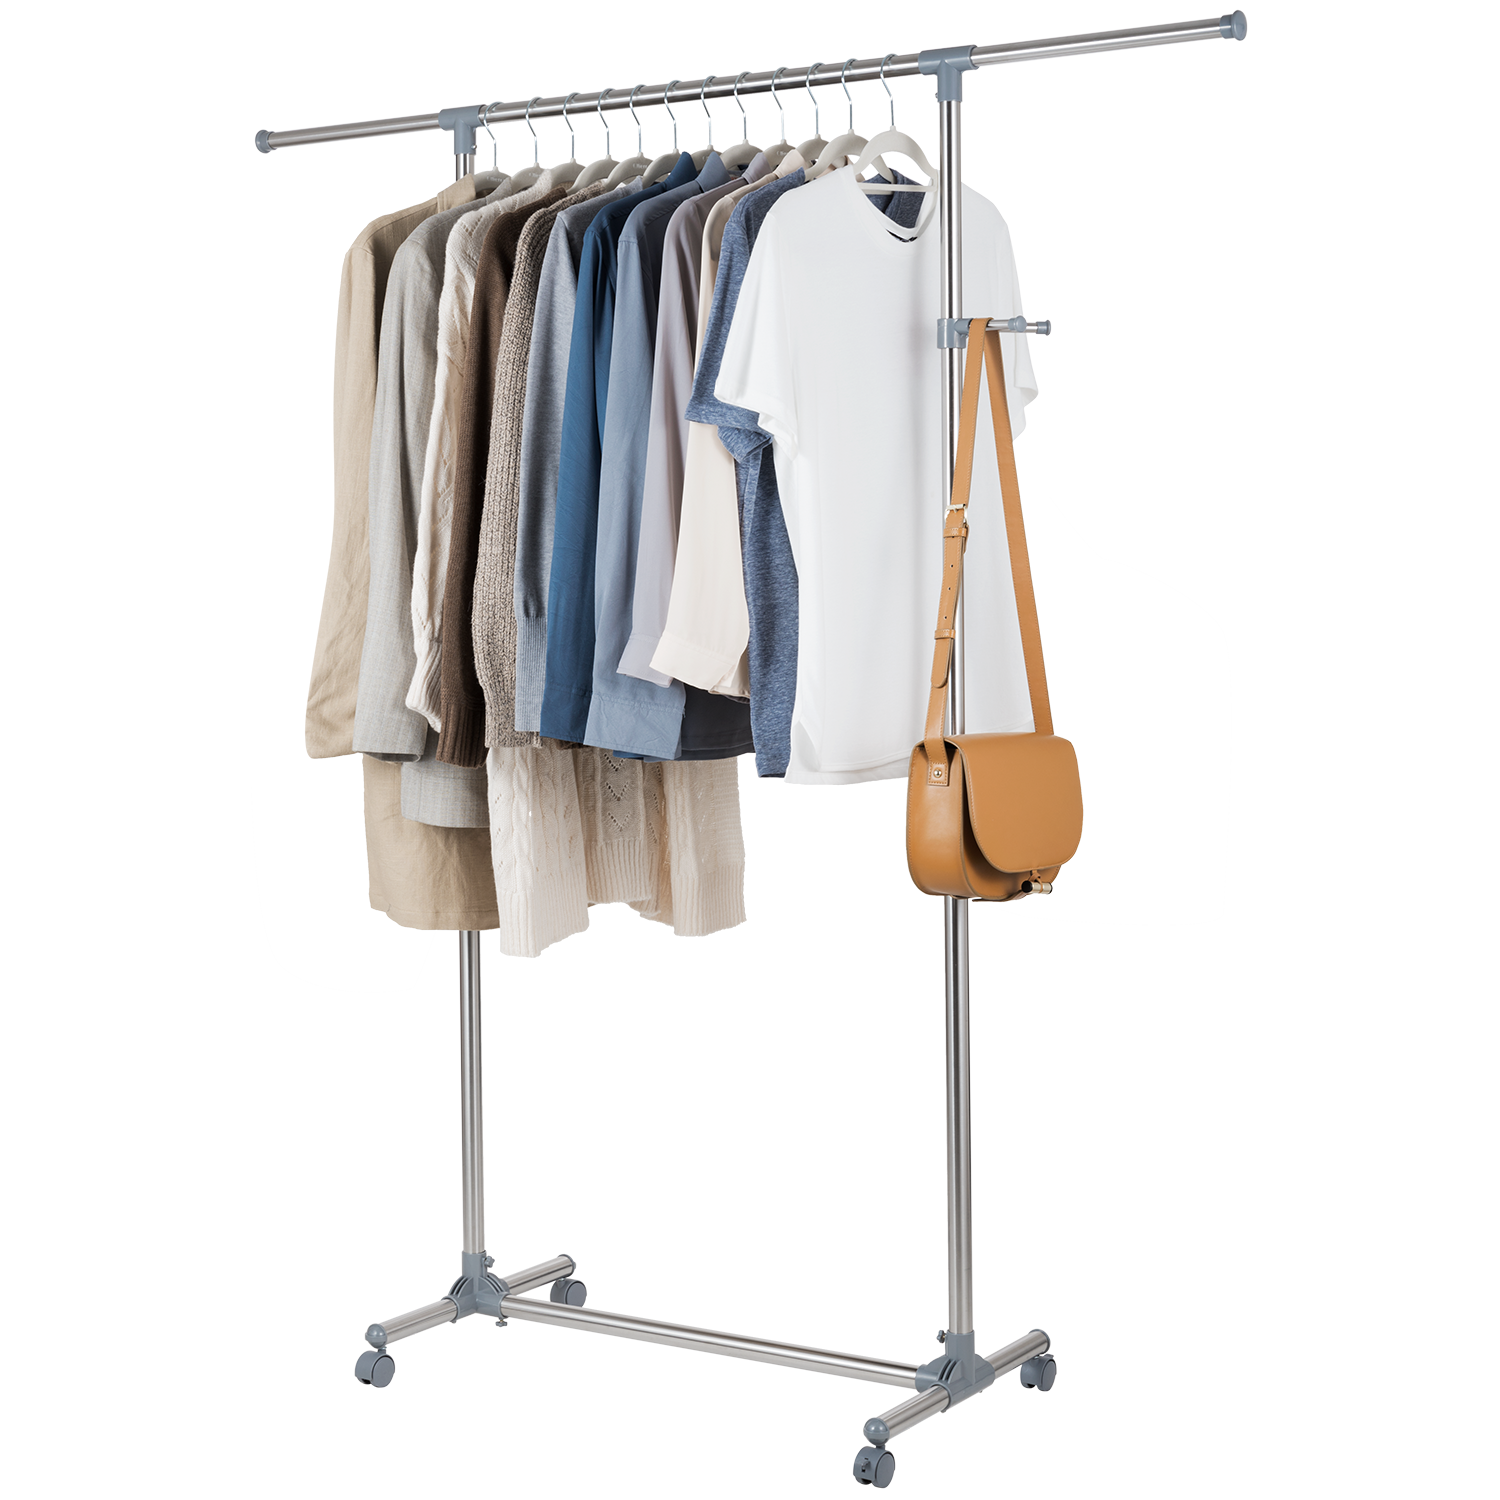 Rolling Tire Storage Rack >> Allieroo Stainless Steel Adjustable Rolling Garment Rack Portable Clothes Hanger Single Rail ...